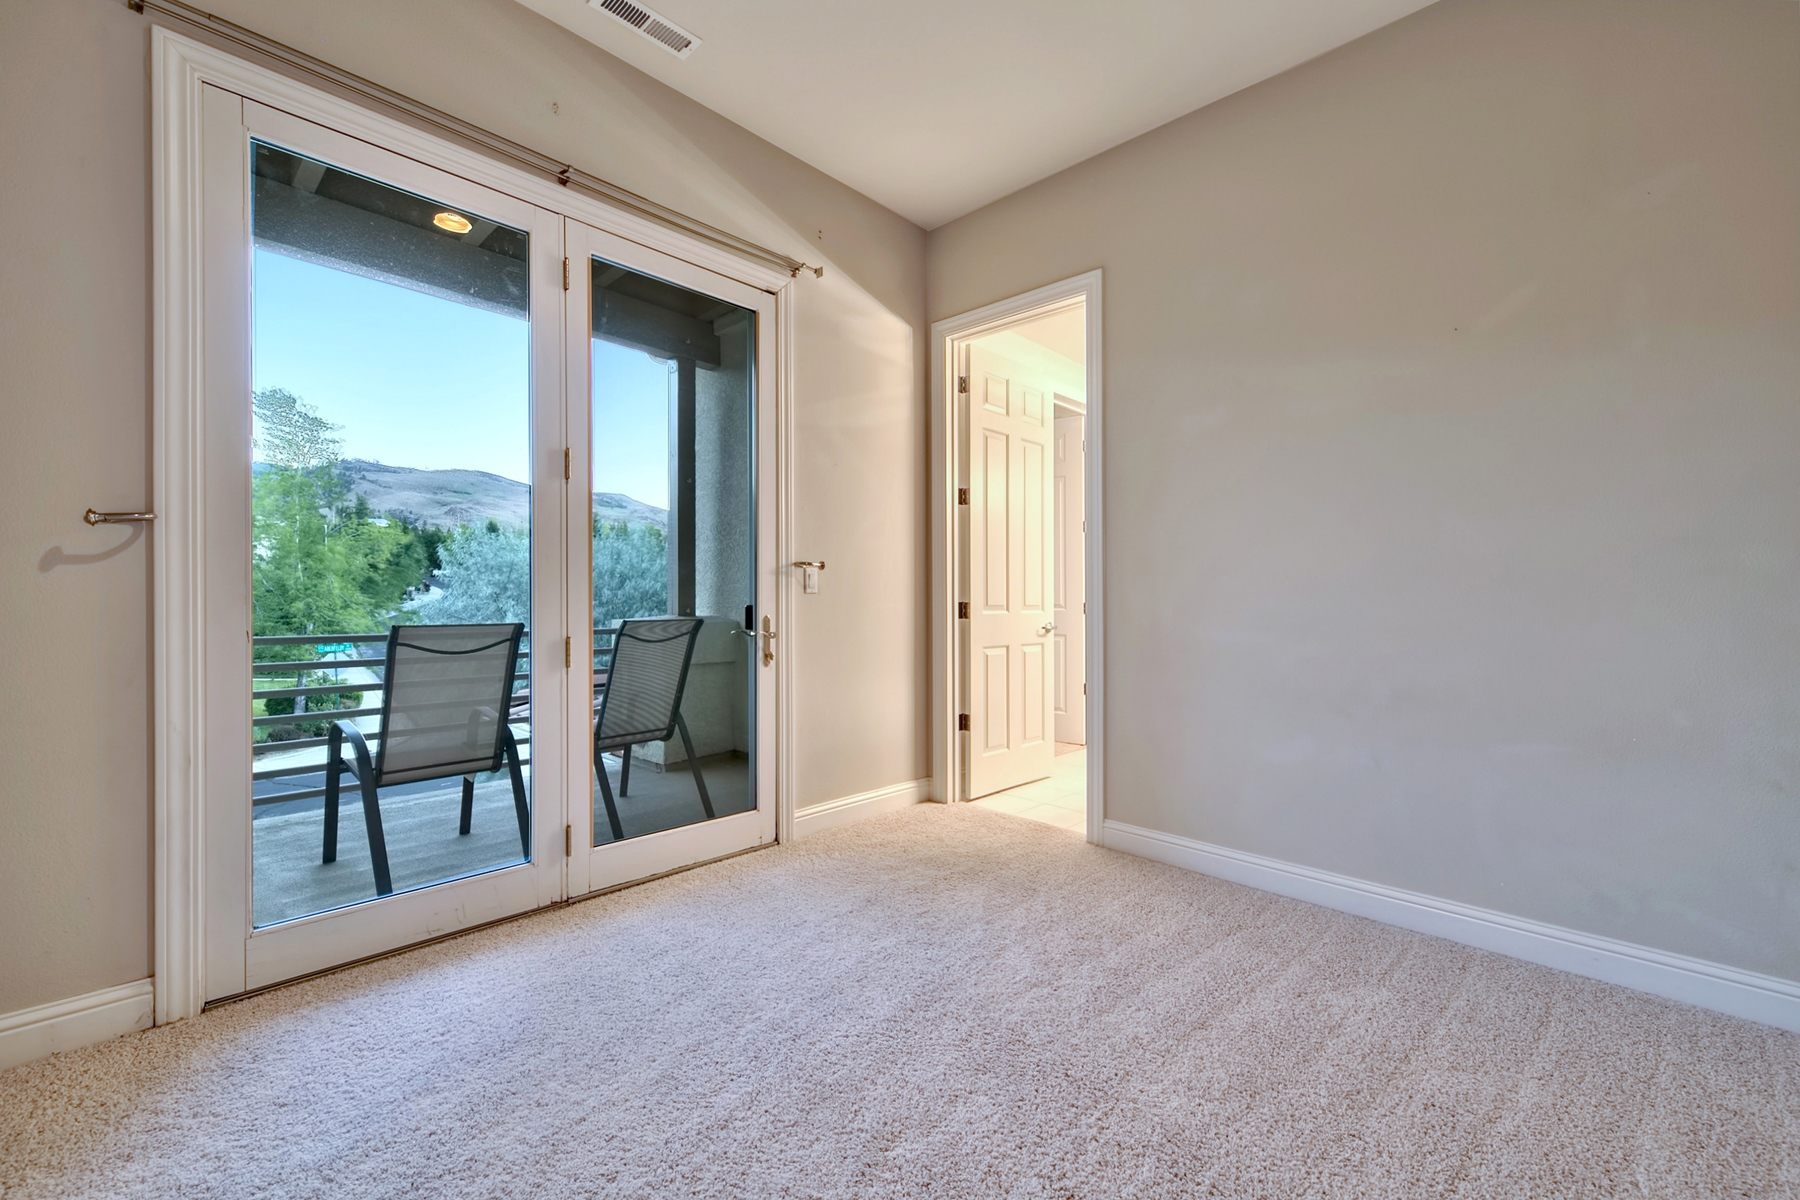 Additional photo for property listing at 4770 Aberfeldy Road, Reno, Nevada 4770  Aberfeldy Road Reno, Nevada 89519 United States